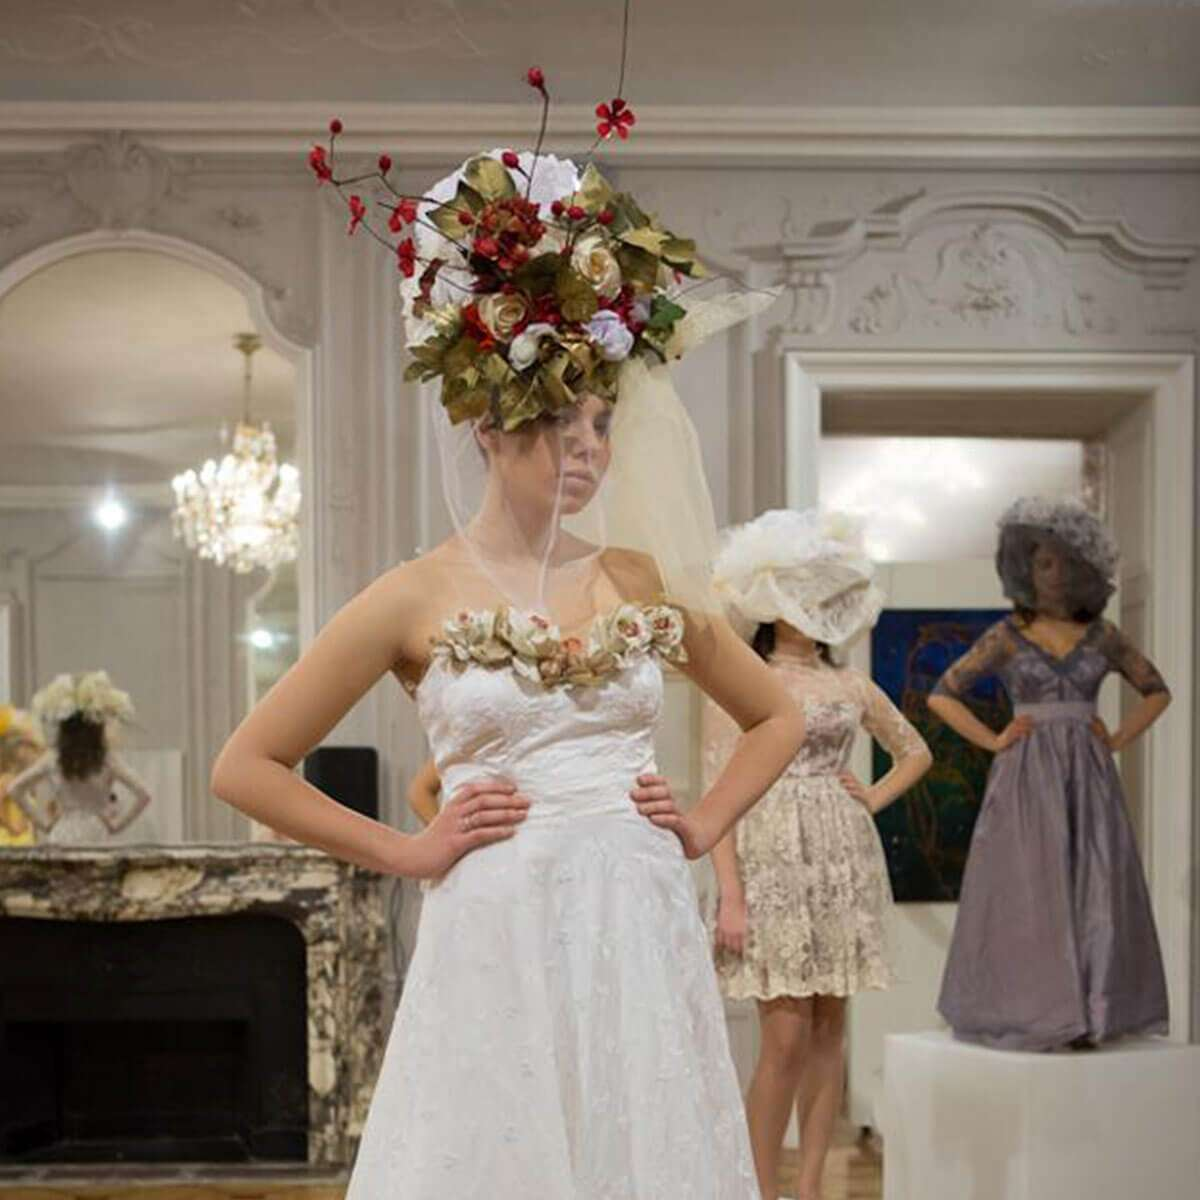 Valeria_Valencer_Hats_flowers_fashion006